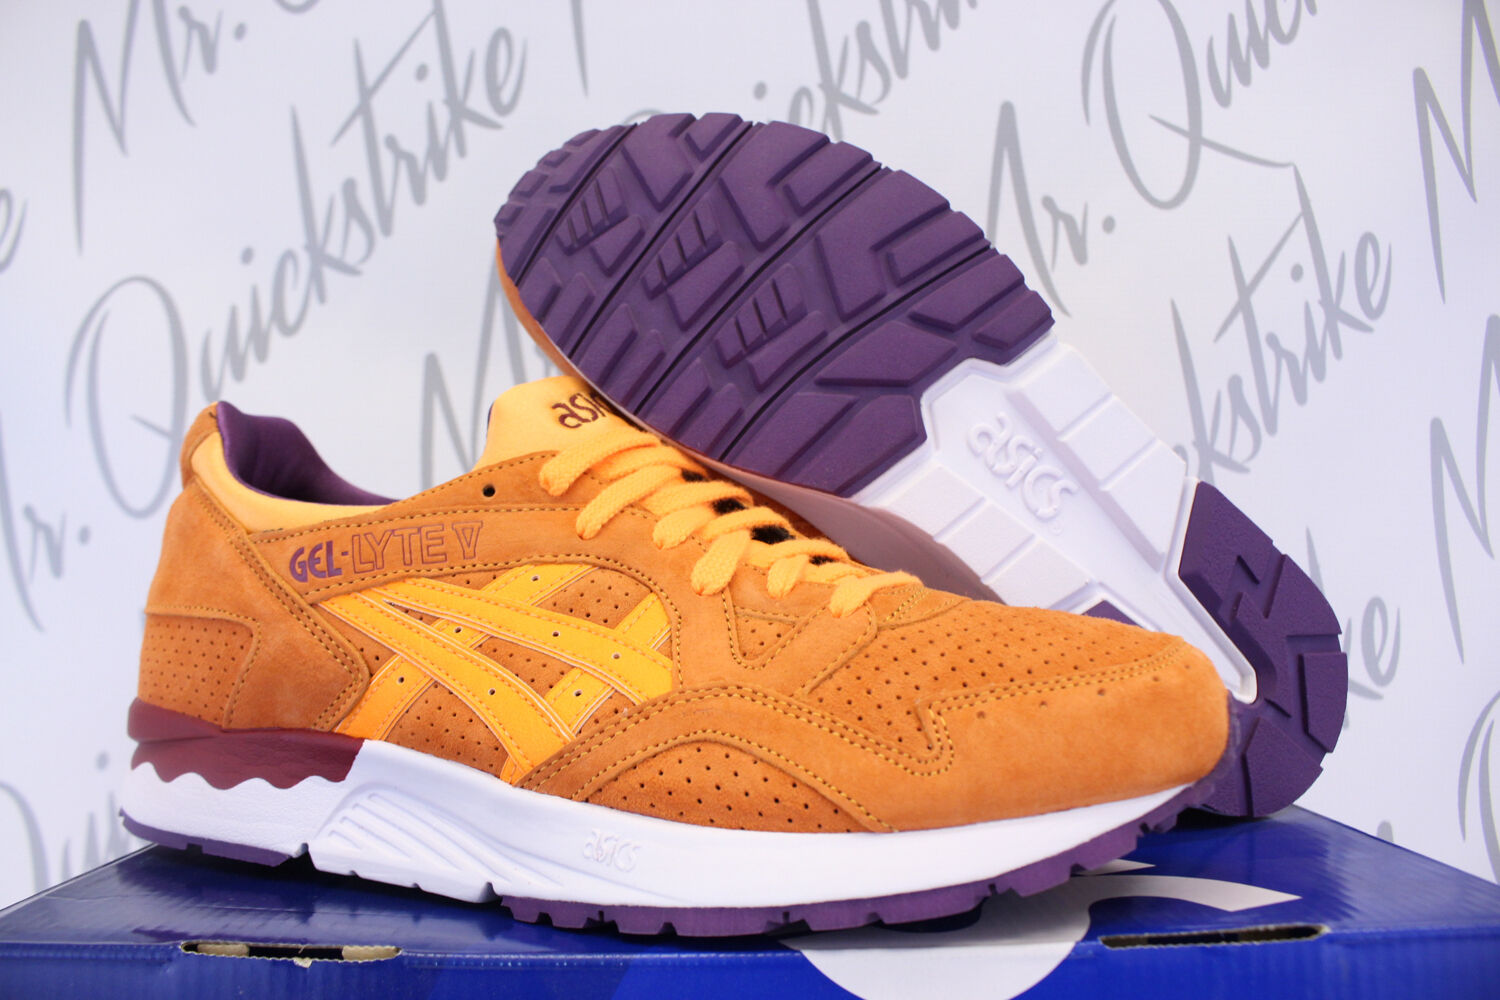 ASICS GEL LYTE V SZ 9 ORANGE POP PURPLE BURGUNDY WHITE H5D2L 3030